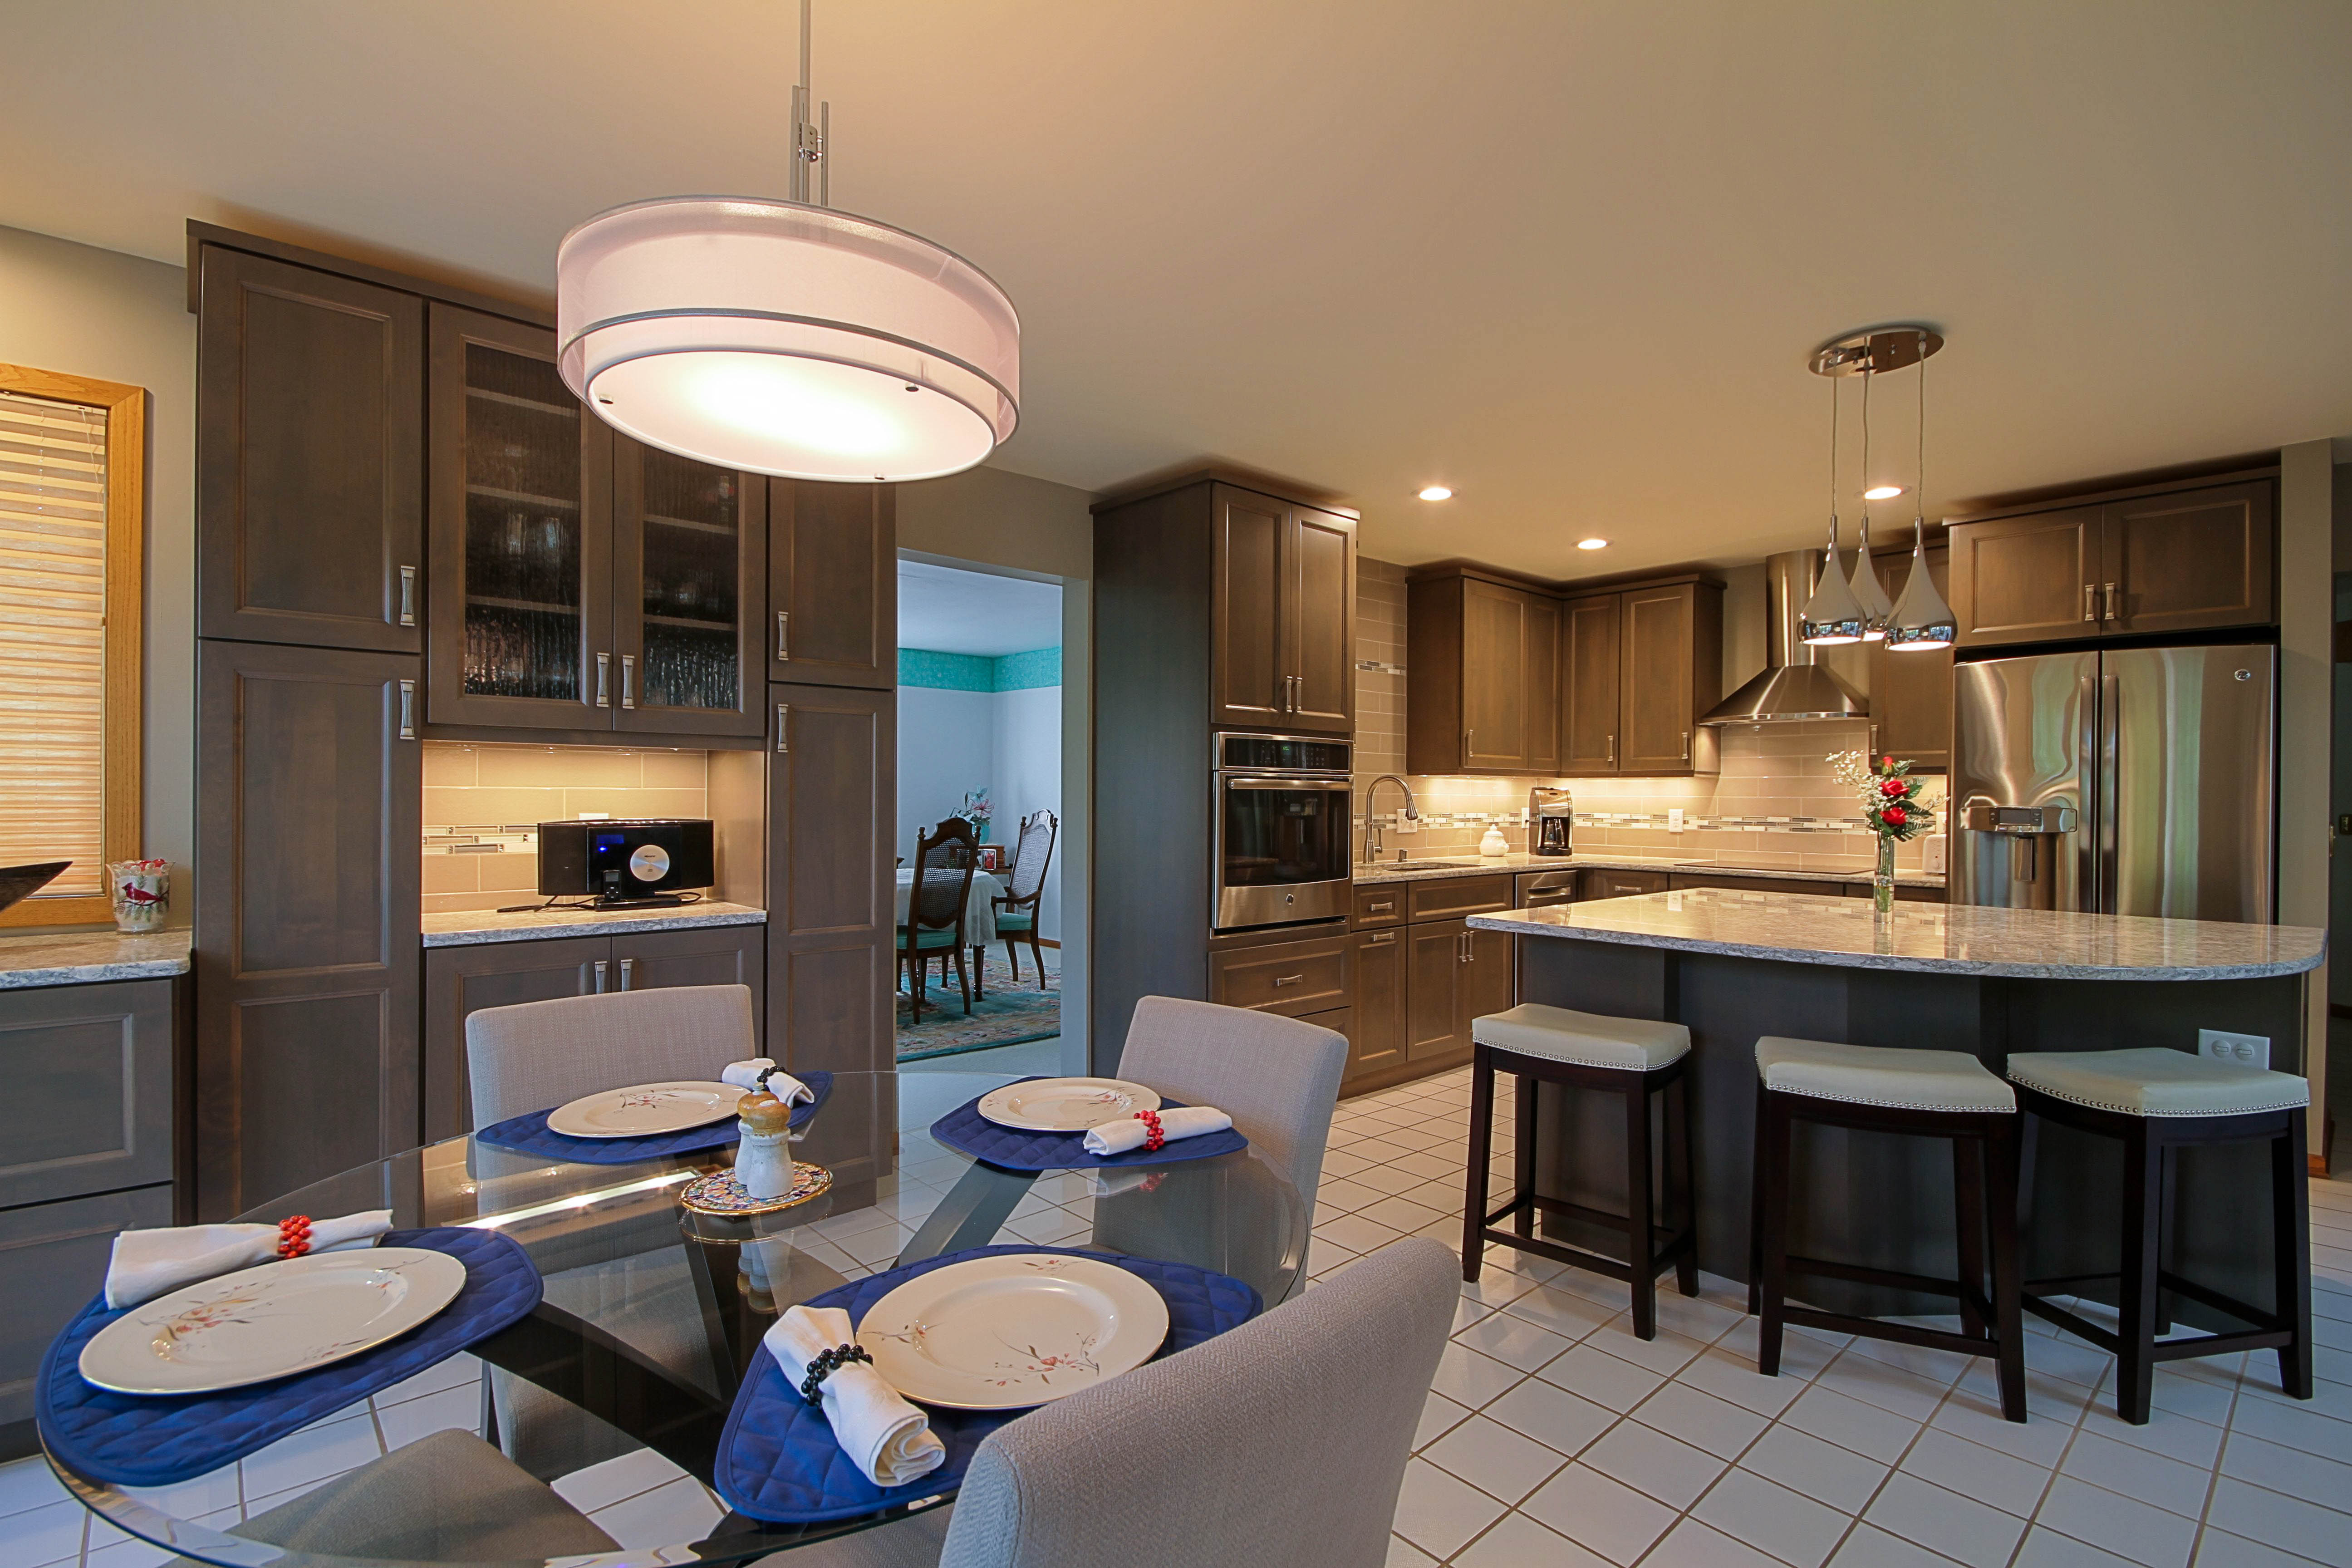 Kitchen Remodeling, white flooring, grey kitchen cabinets, wall oven